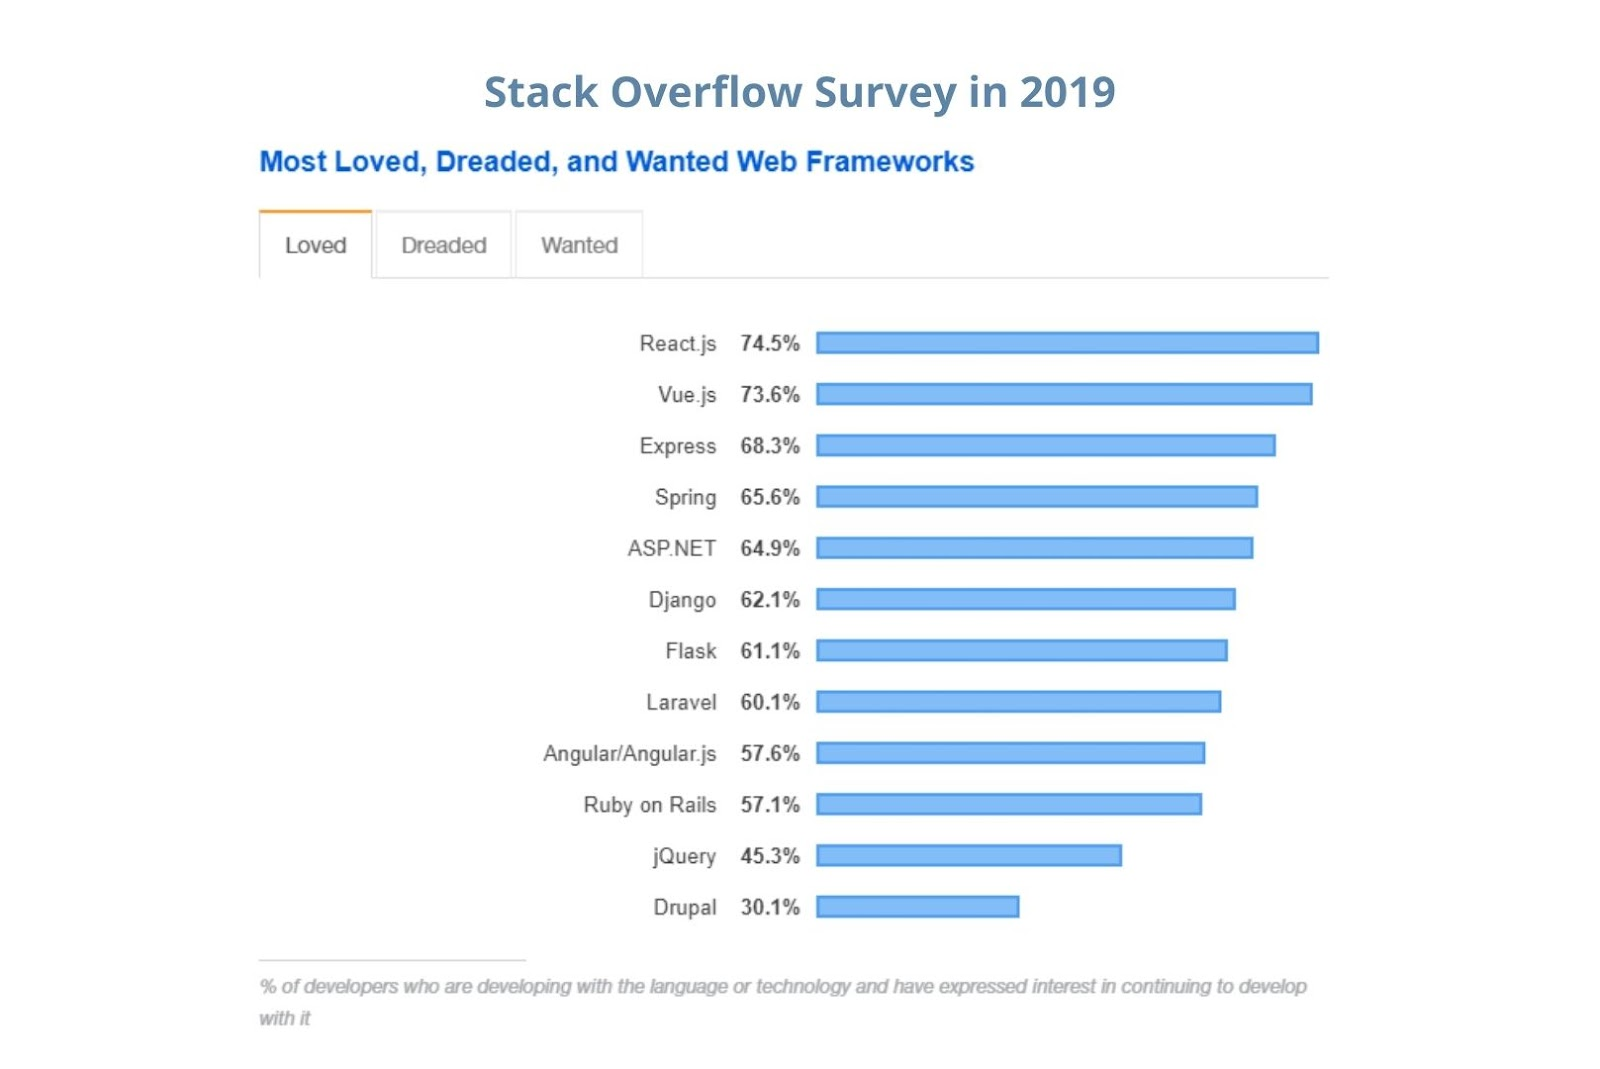 Stack overflow survey in 2019